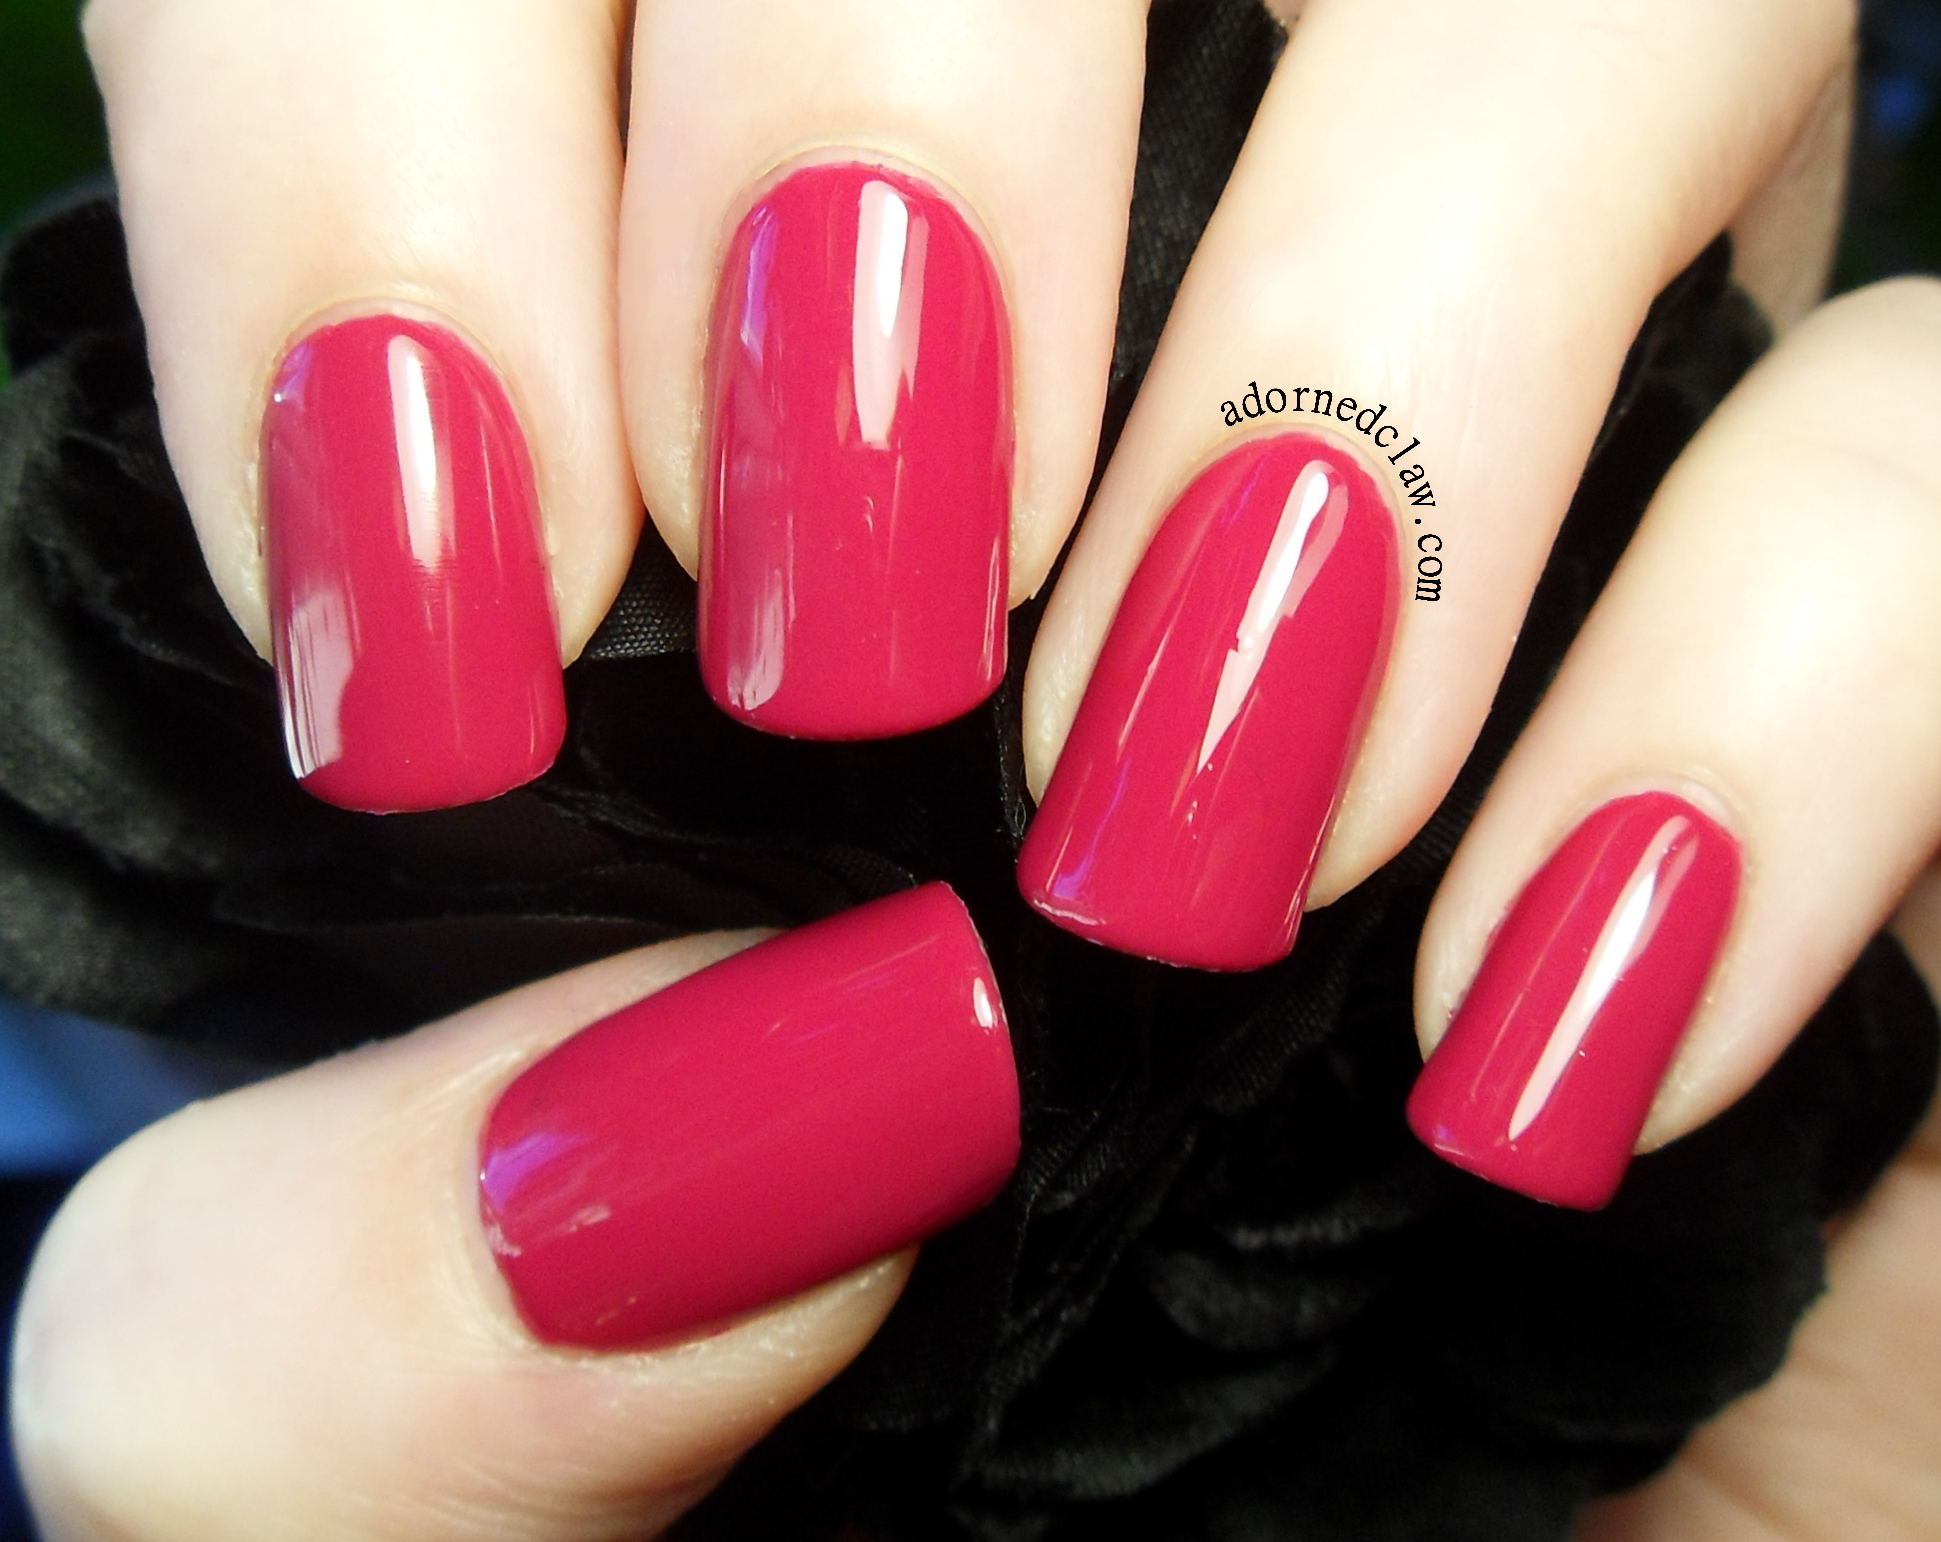 Real Nail Color Nail Polish From Japan The Adorned Claw